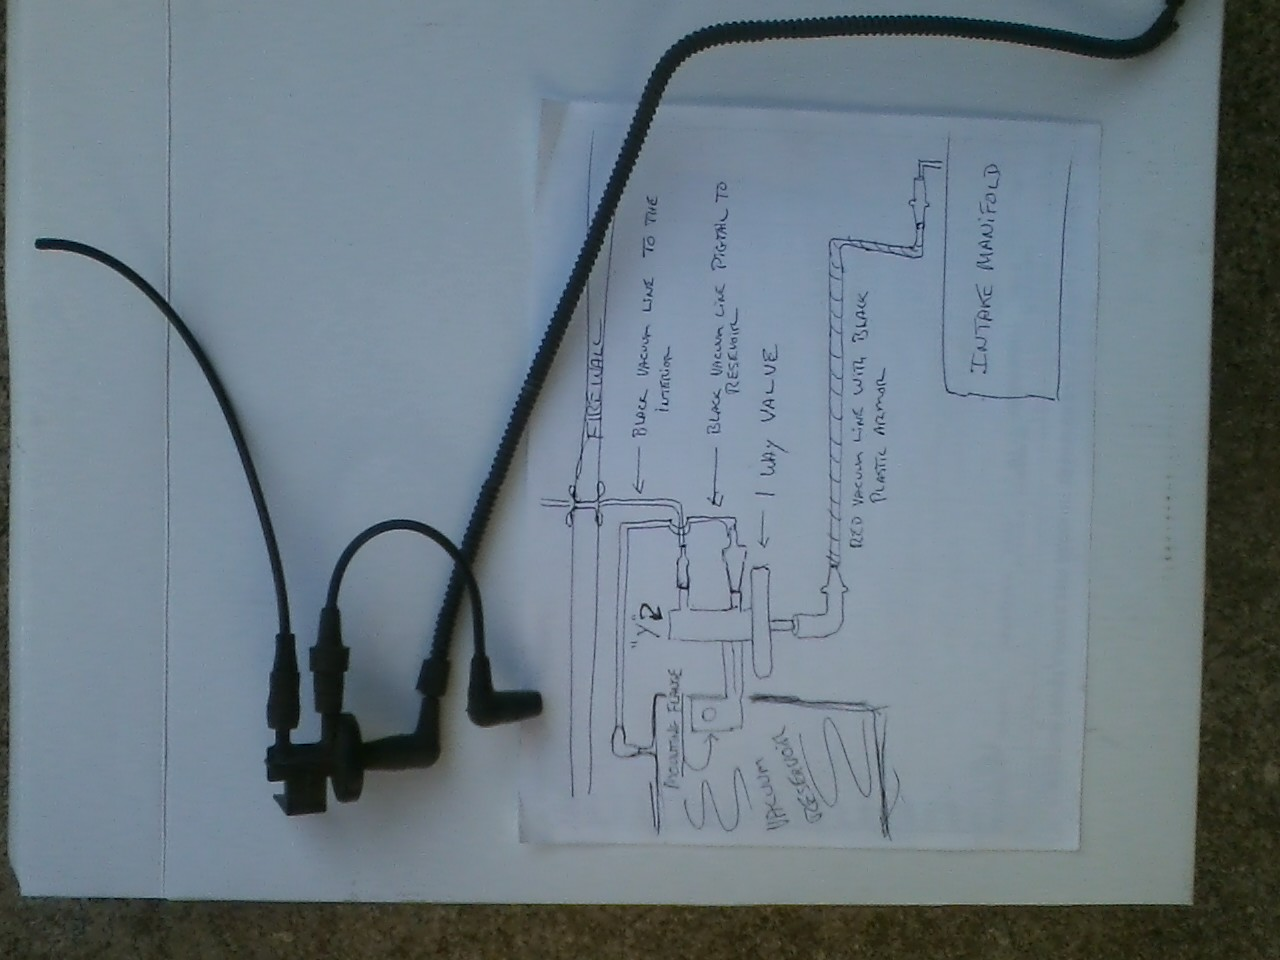 98 Windstar Vacuum Lines Diagram Product Wiring Diagrams 1998 Fuse Hose Locations 3 8l 96 Fordforumsonline Com Rh 95 Box